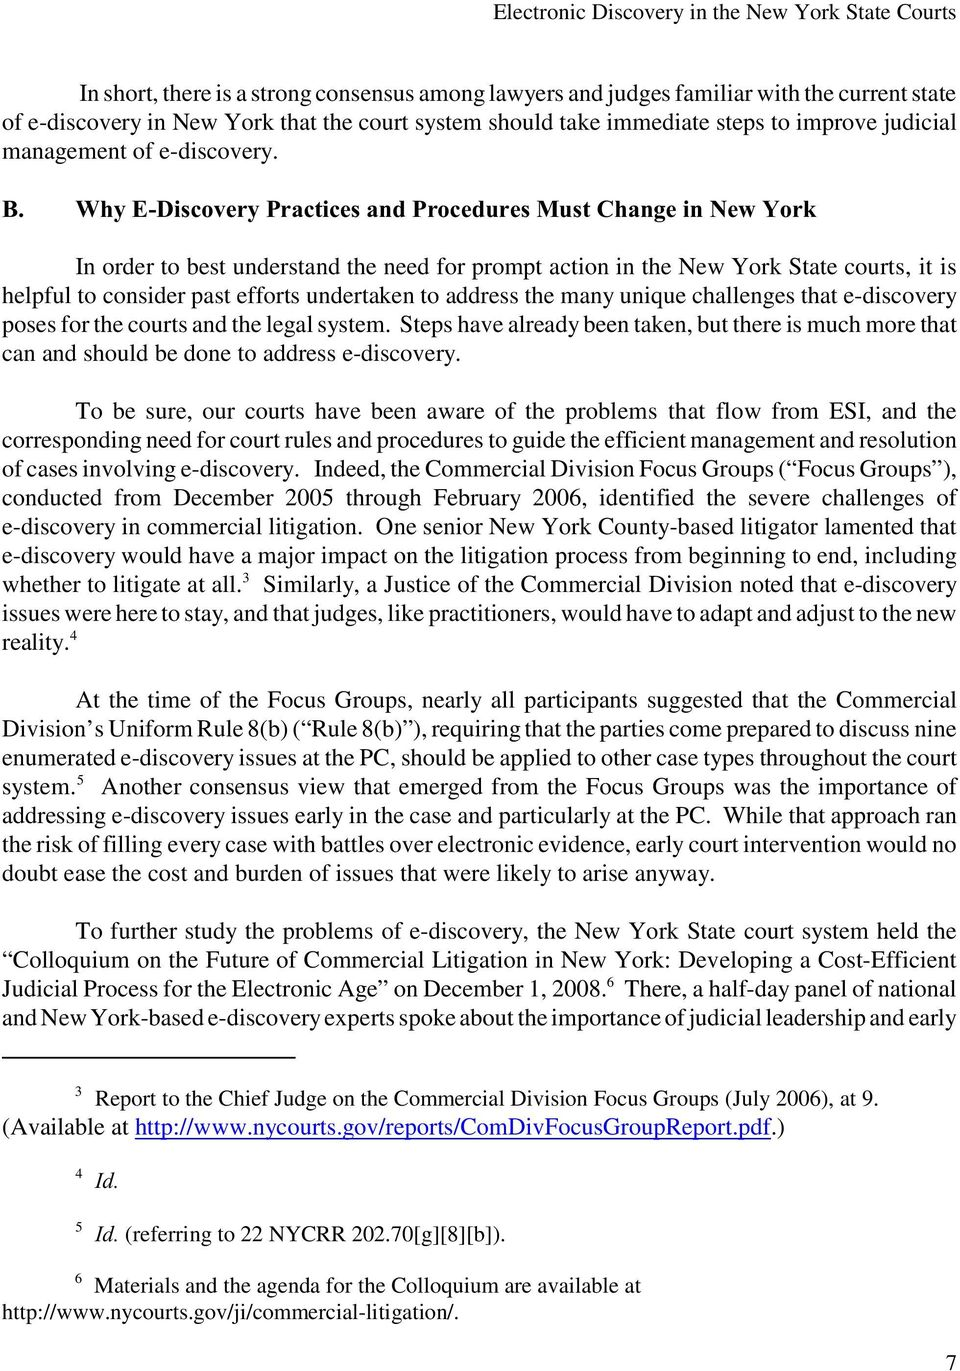 Why E-Discovery Practices and Procedures Must Change in New York In order to best understand the need for prompt action in the New York State courts, it is helpful to consider past efforts undertaken